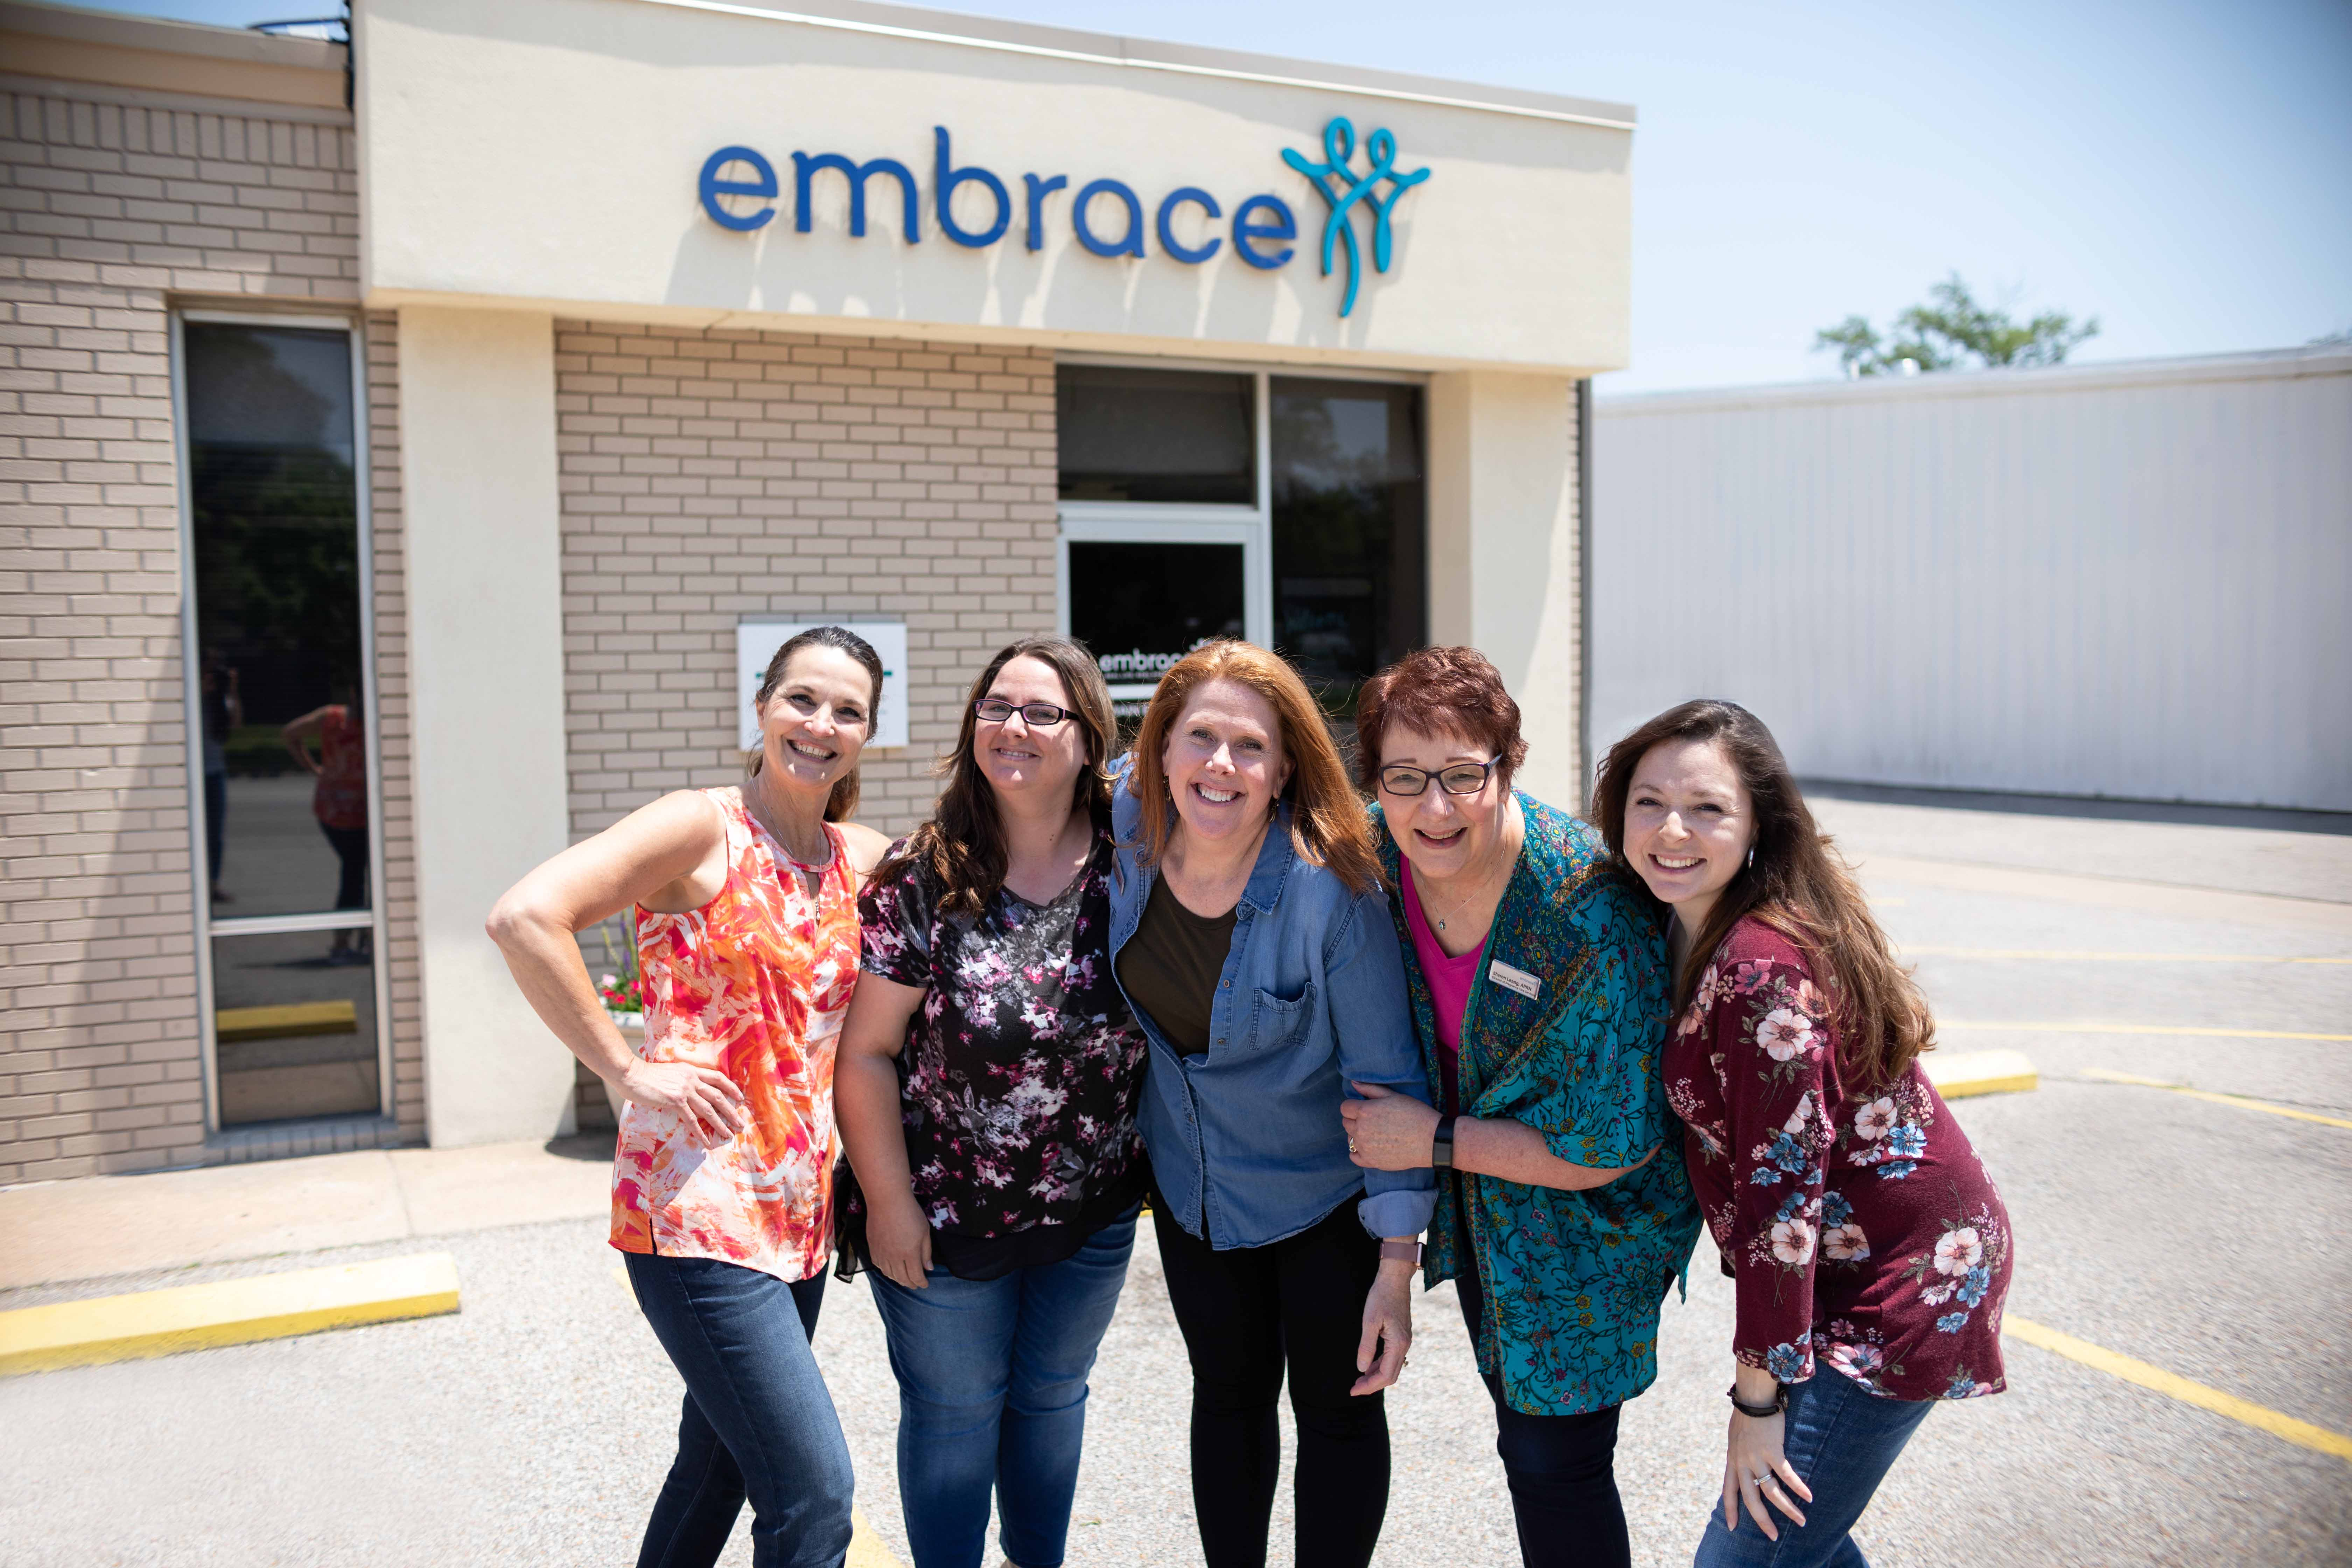 Smiling staff members at Embrace, Wichita